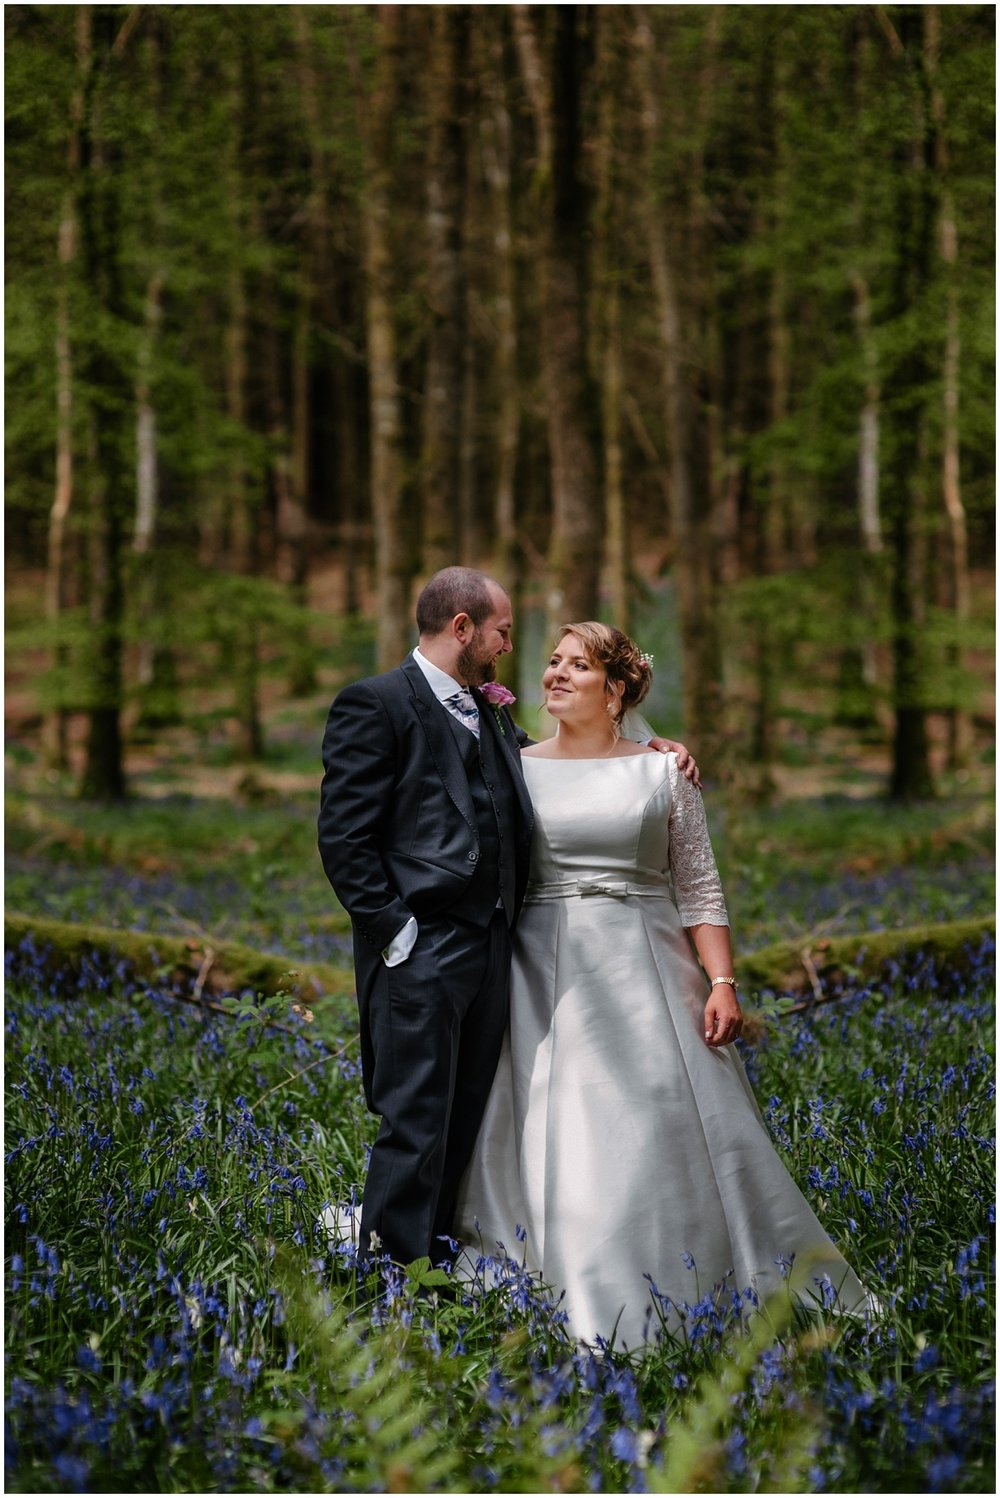 ruth_robbie_lough_erne_resort_wedding_jude_browne_photography_0064.jpg